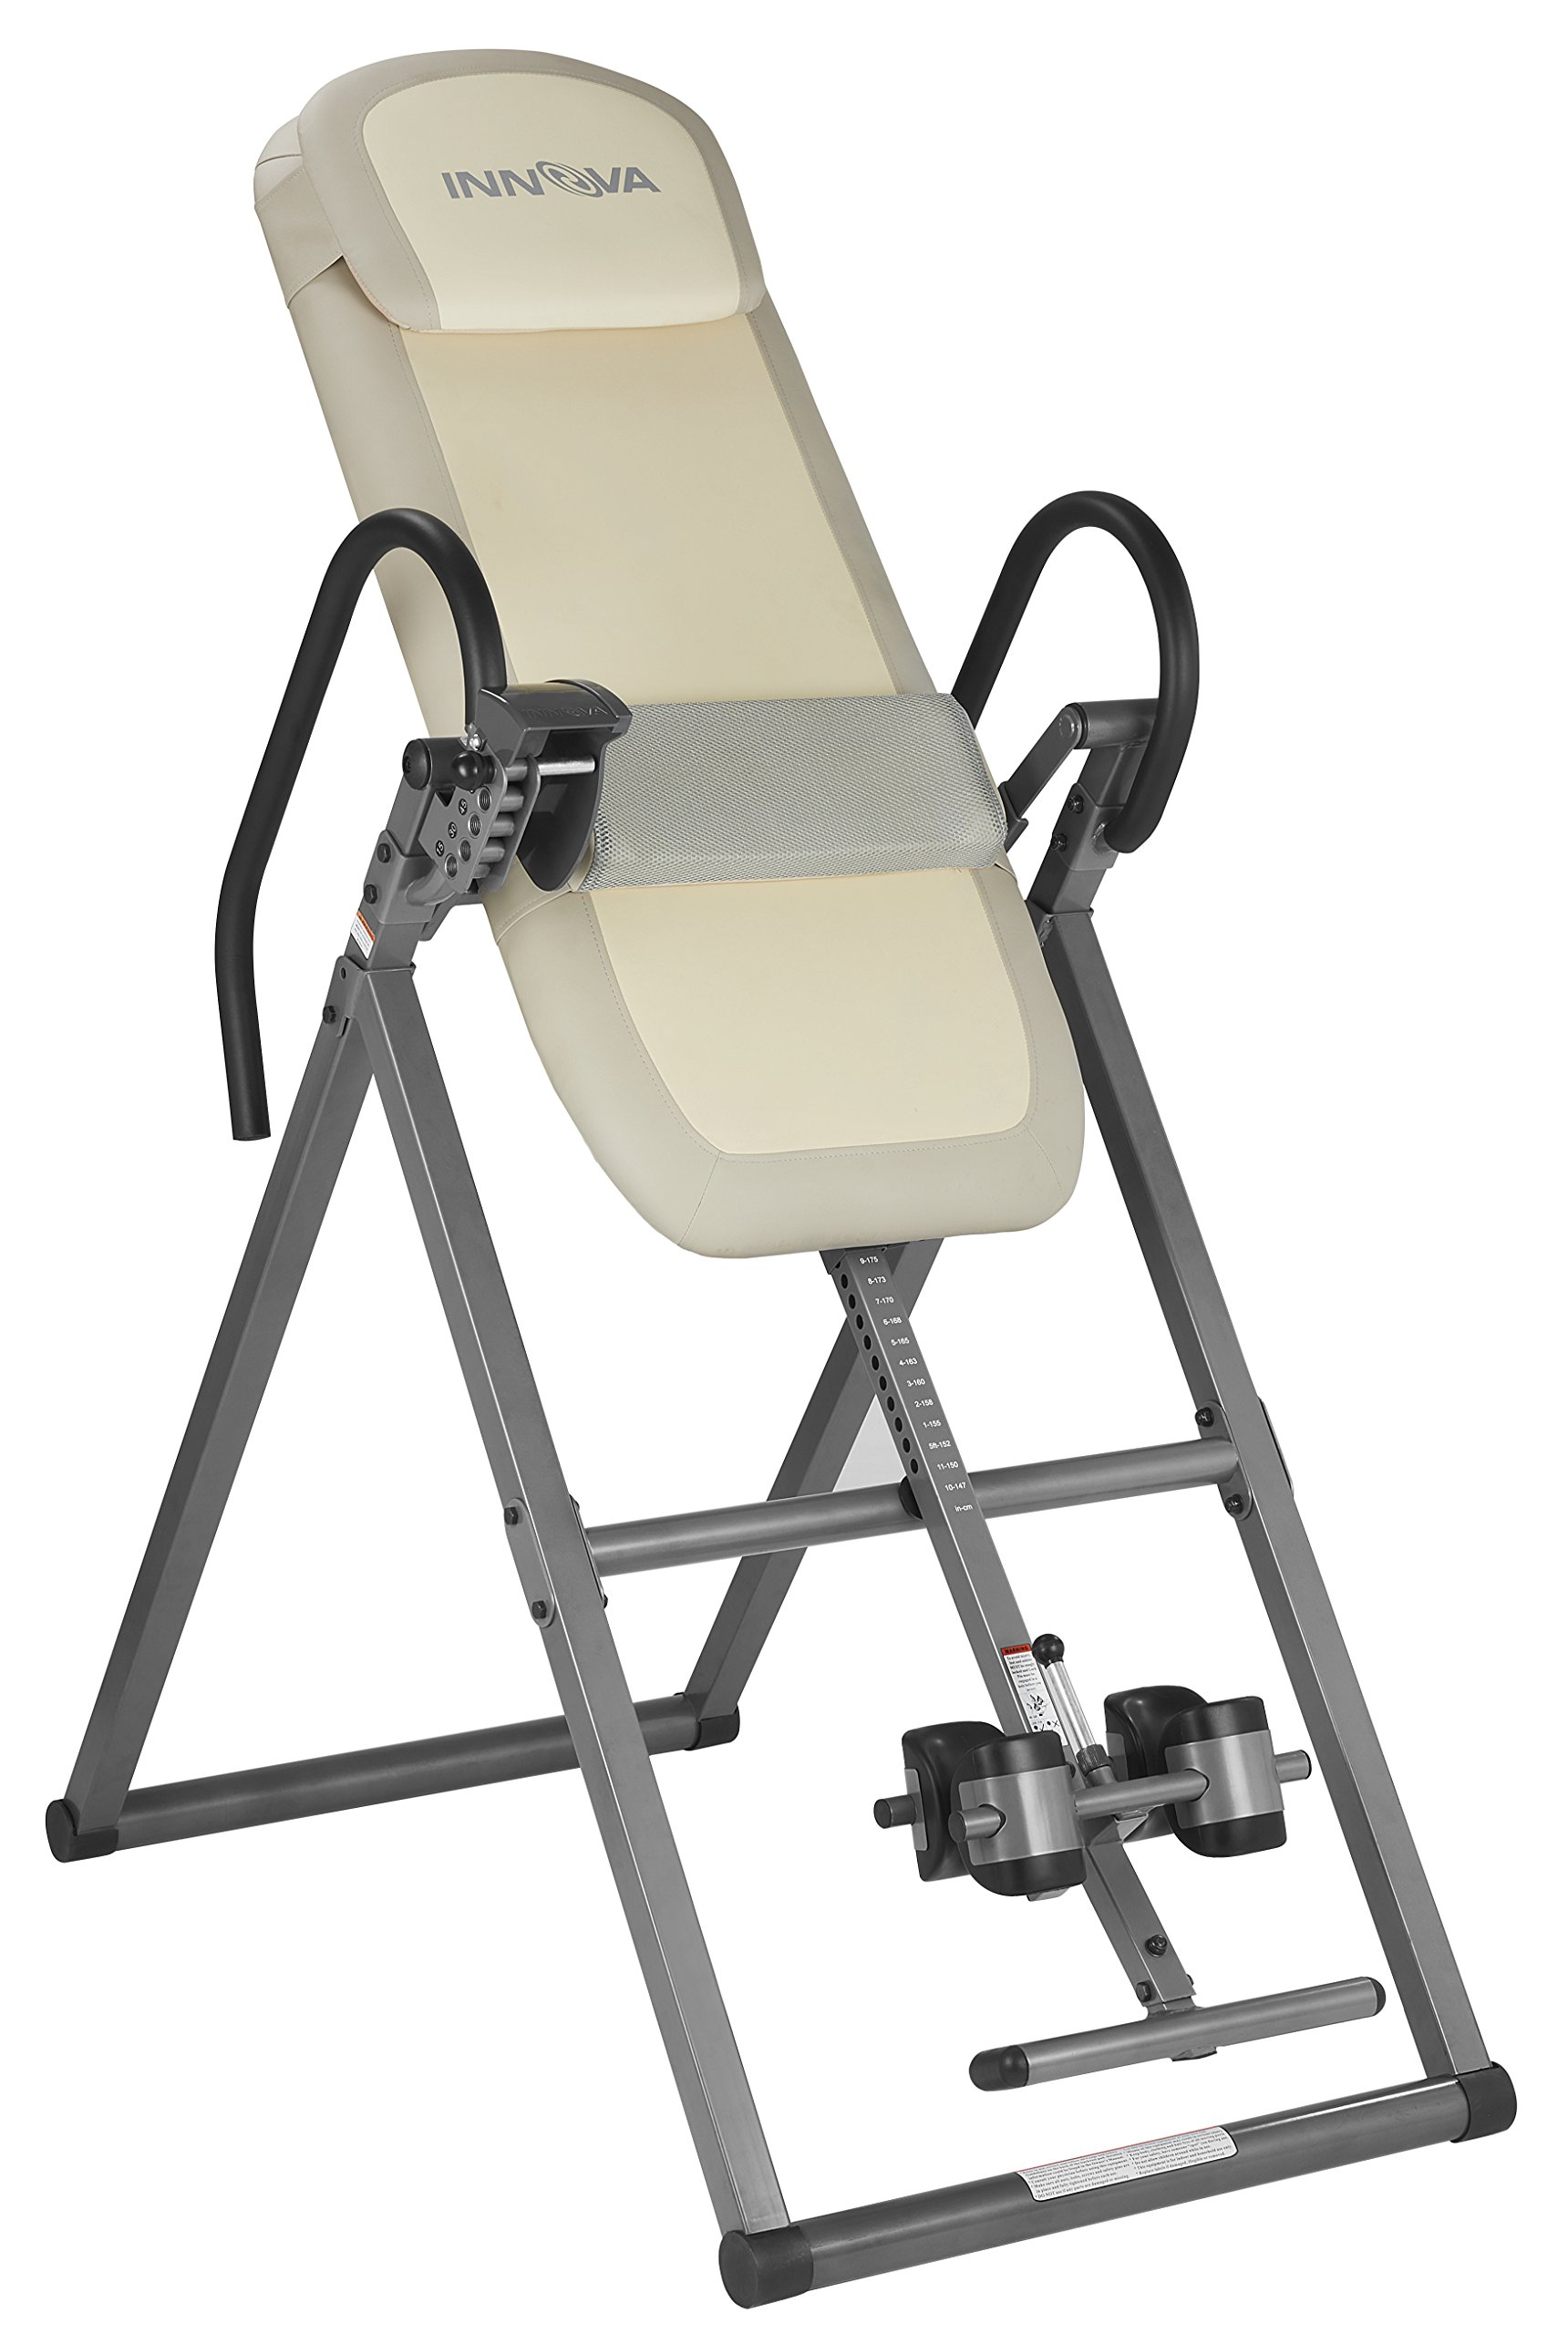 Innova ITX9700 Memory Foam Inversion Table with Lumbar Pad for Hot and Cold Compress by Innova Health and Fitness